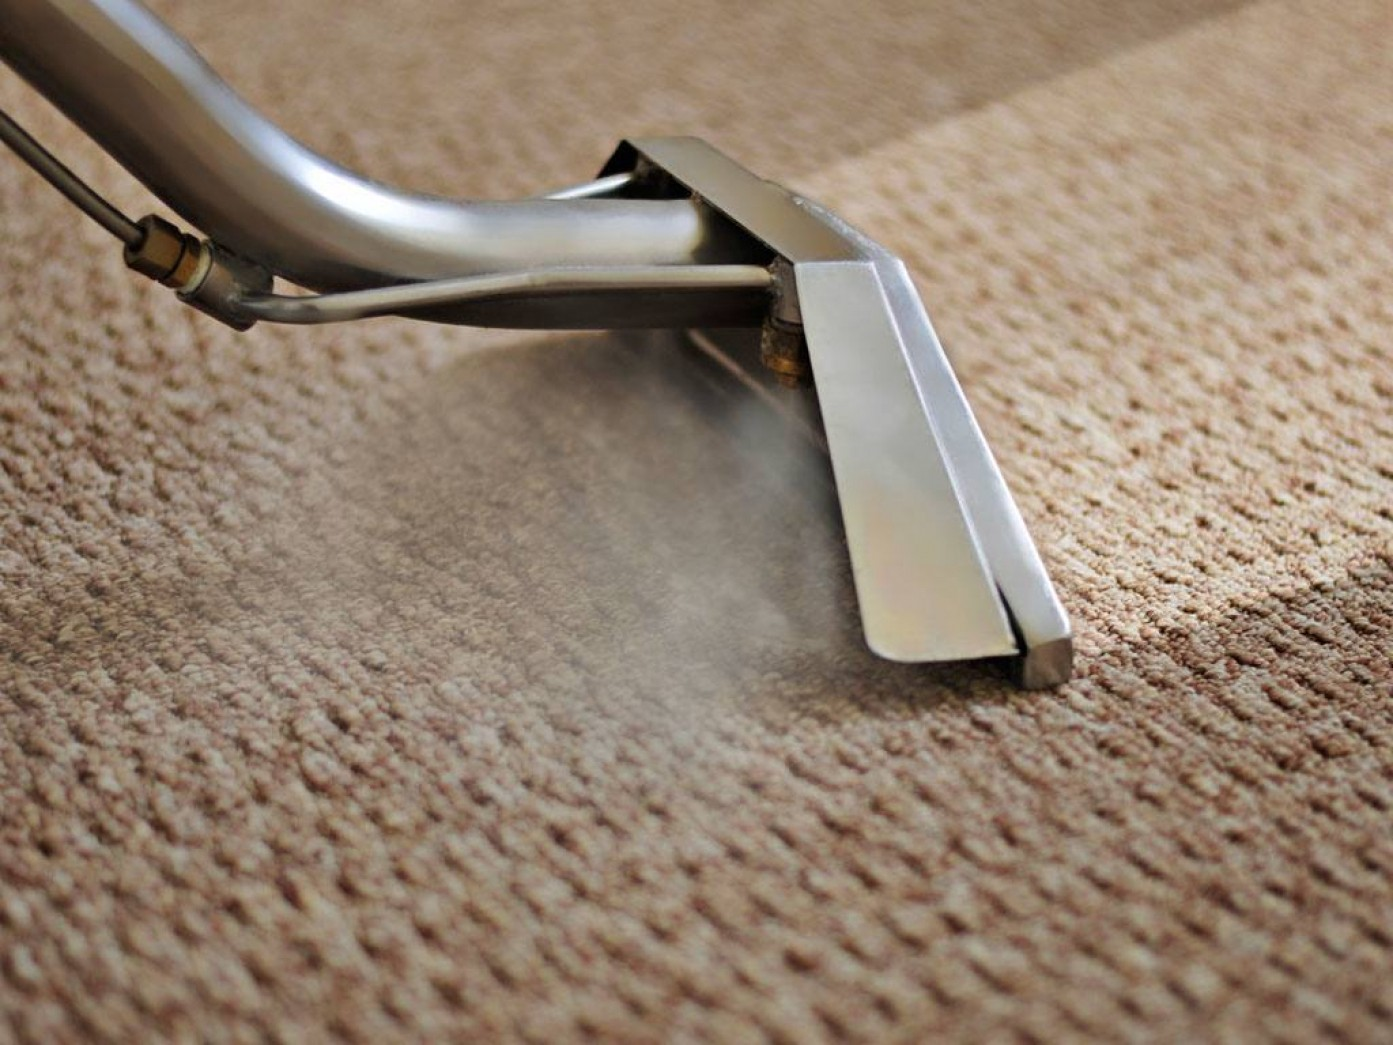 https://neatfixservices.com/wp-content/uploads/2018/11/rug-cleaning-1-600x500.jpg